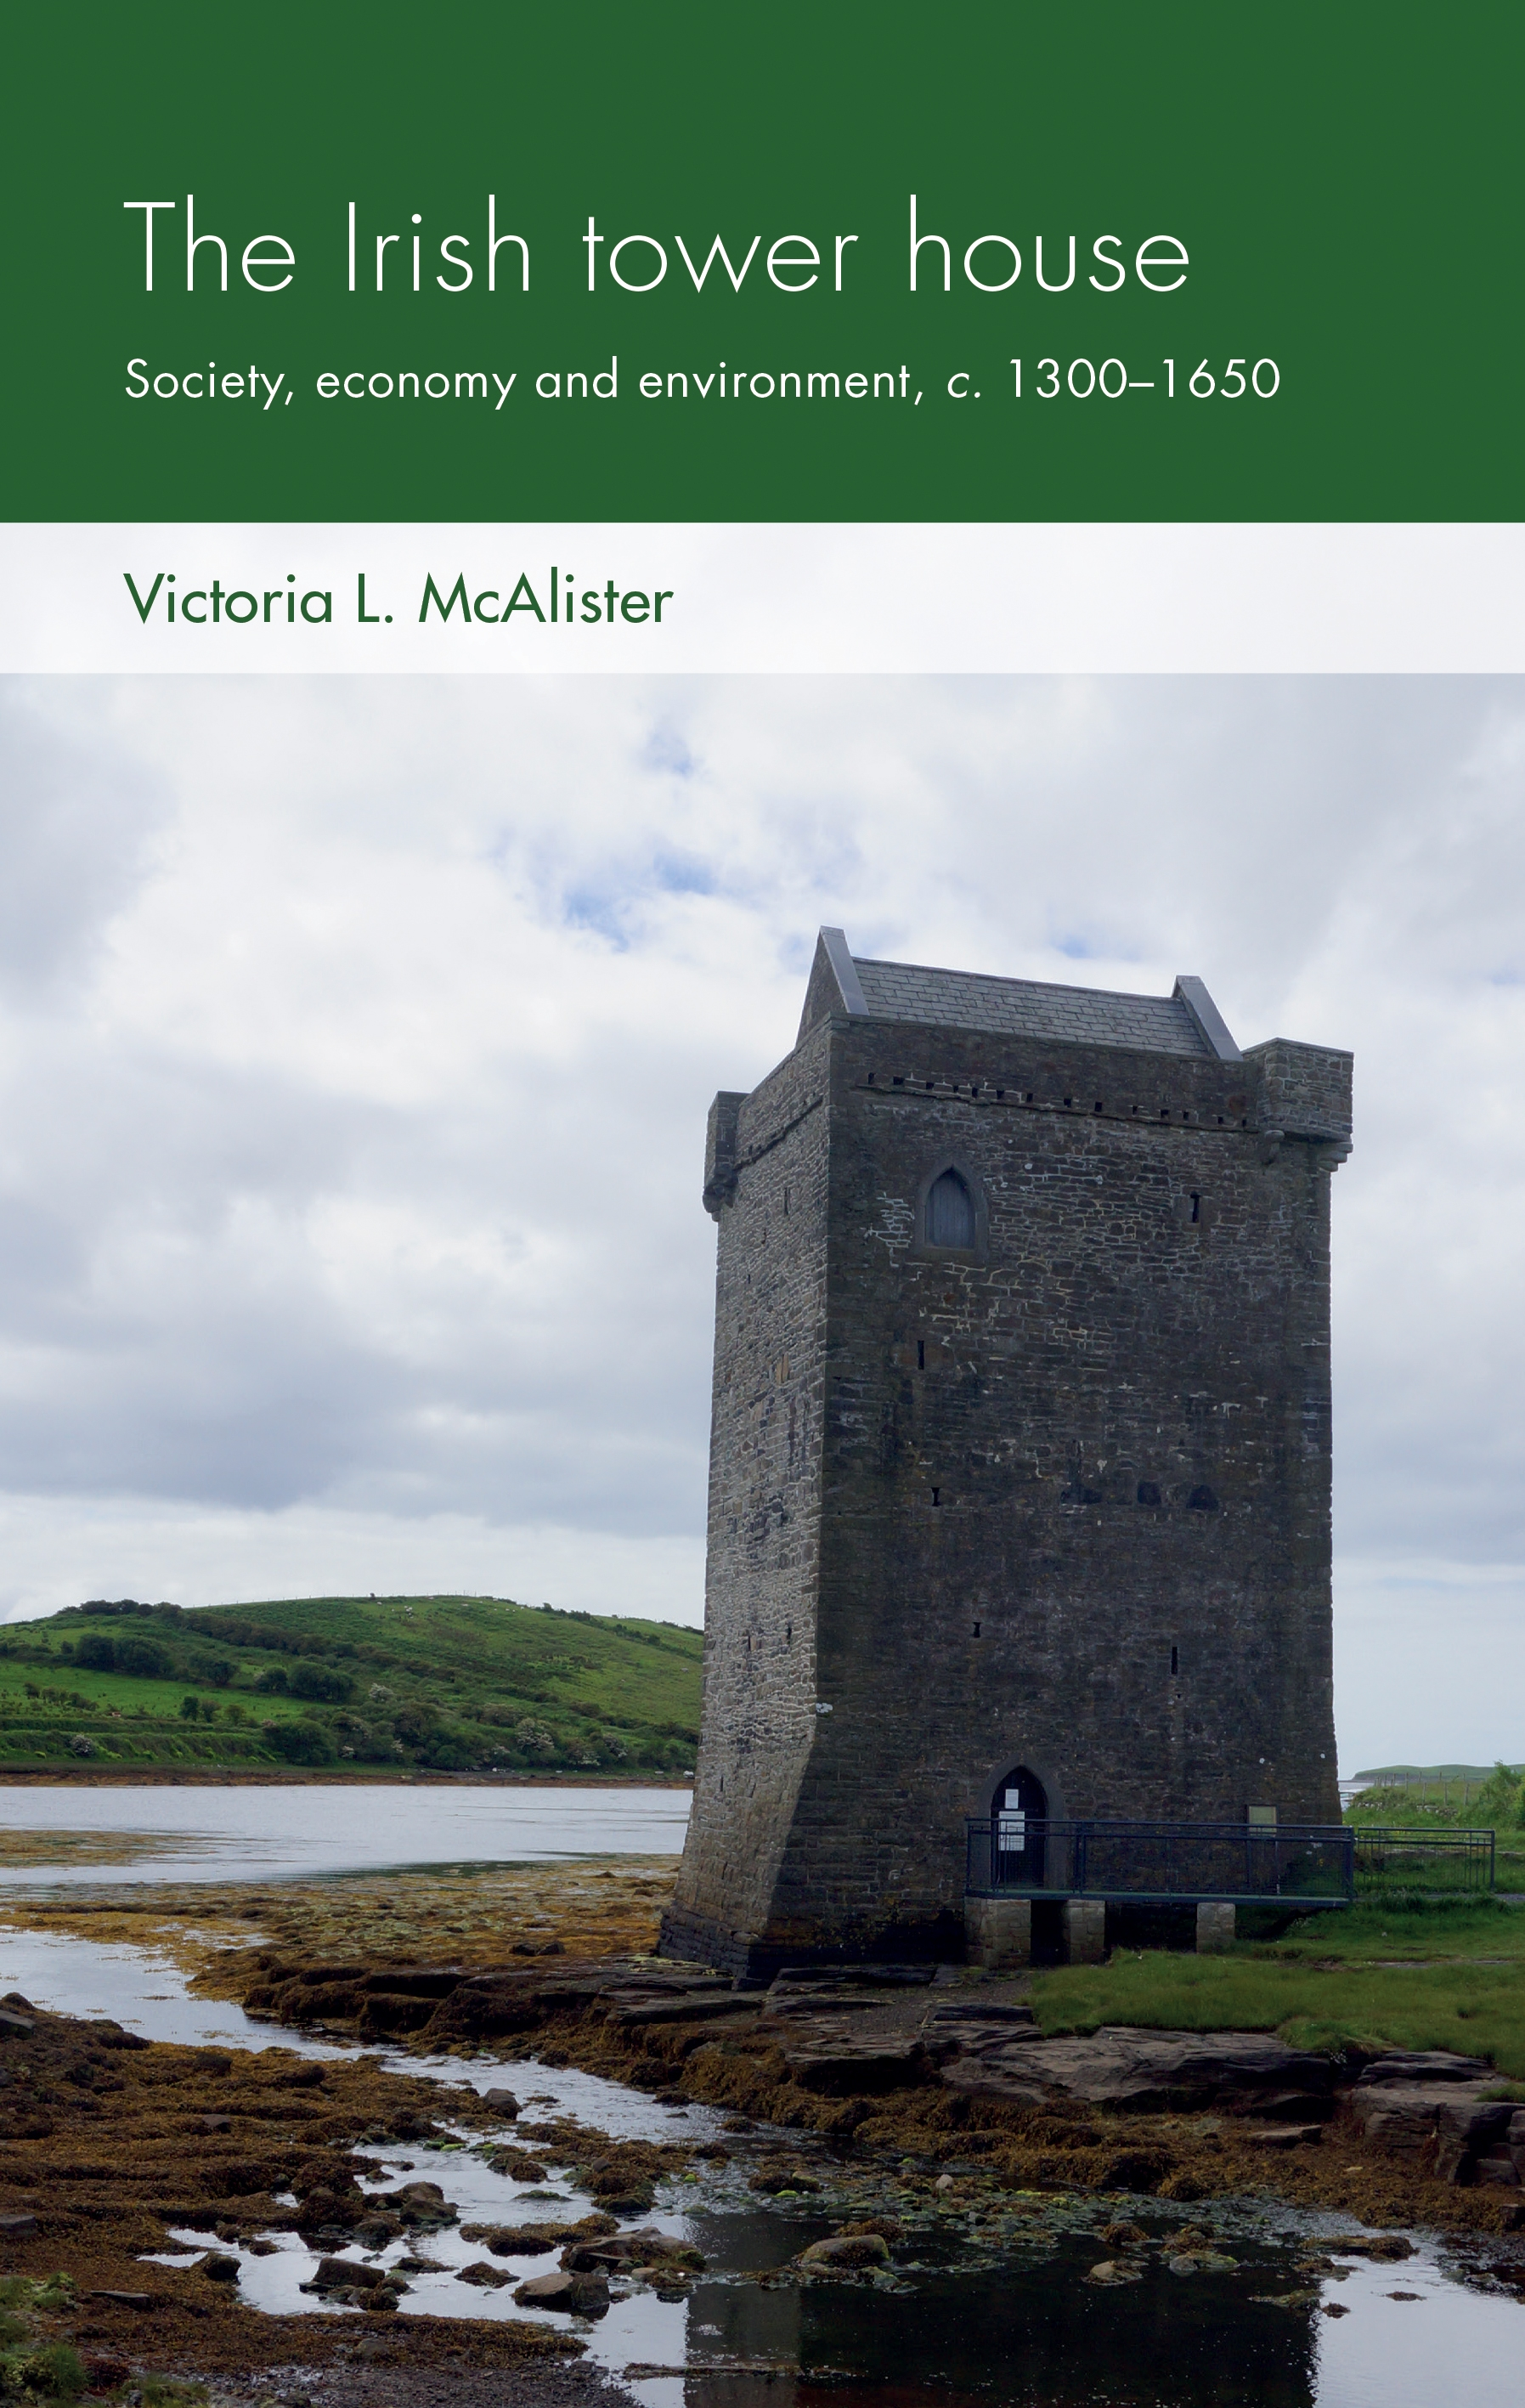 The Irish tower house – Q&A with Victoria L. McAlister